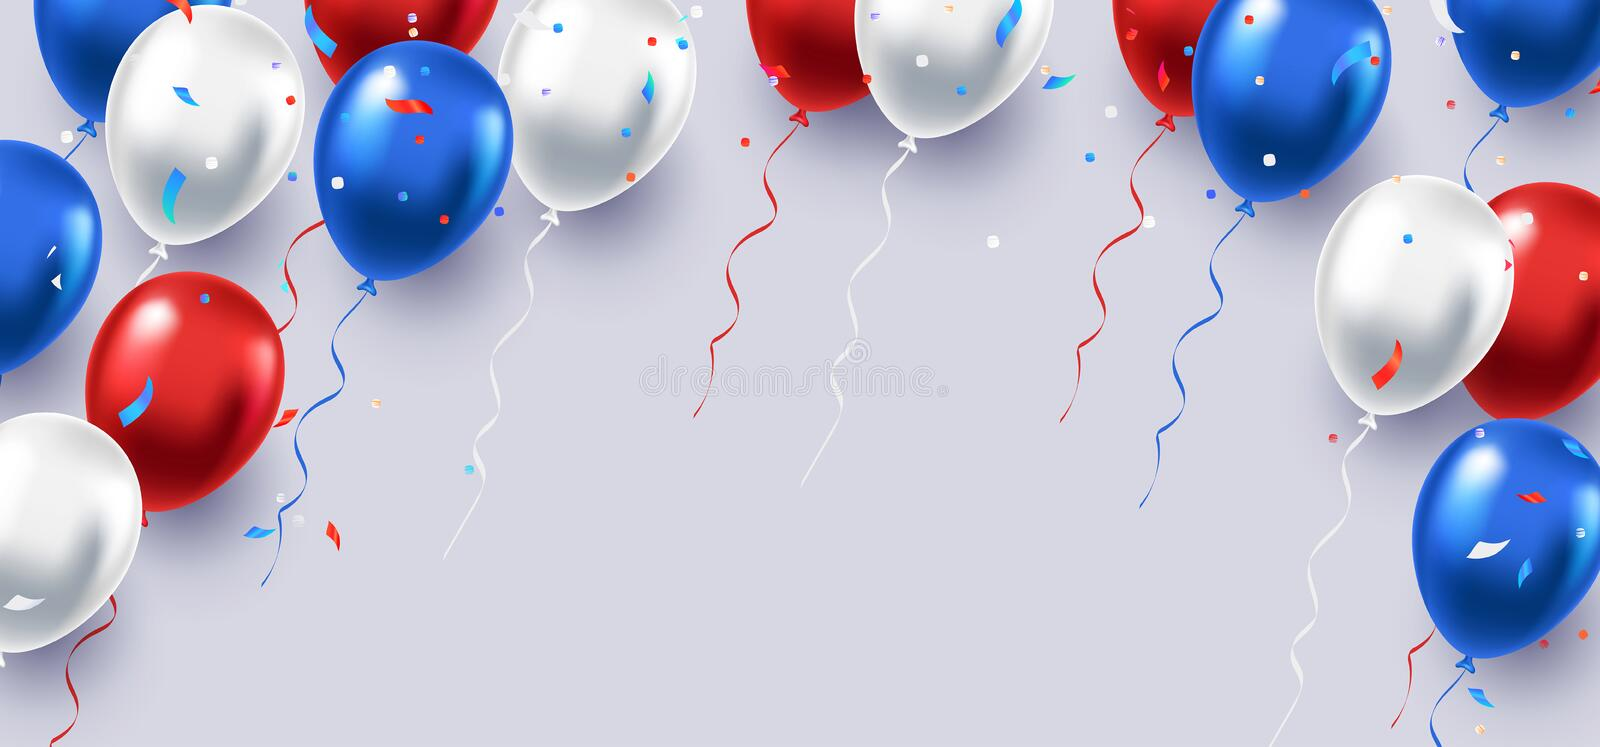 Formal greeting design in national blue, red and white colors with realistic flying balloons vector illustration